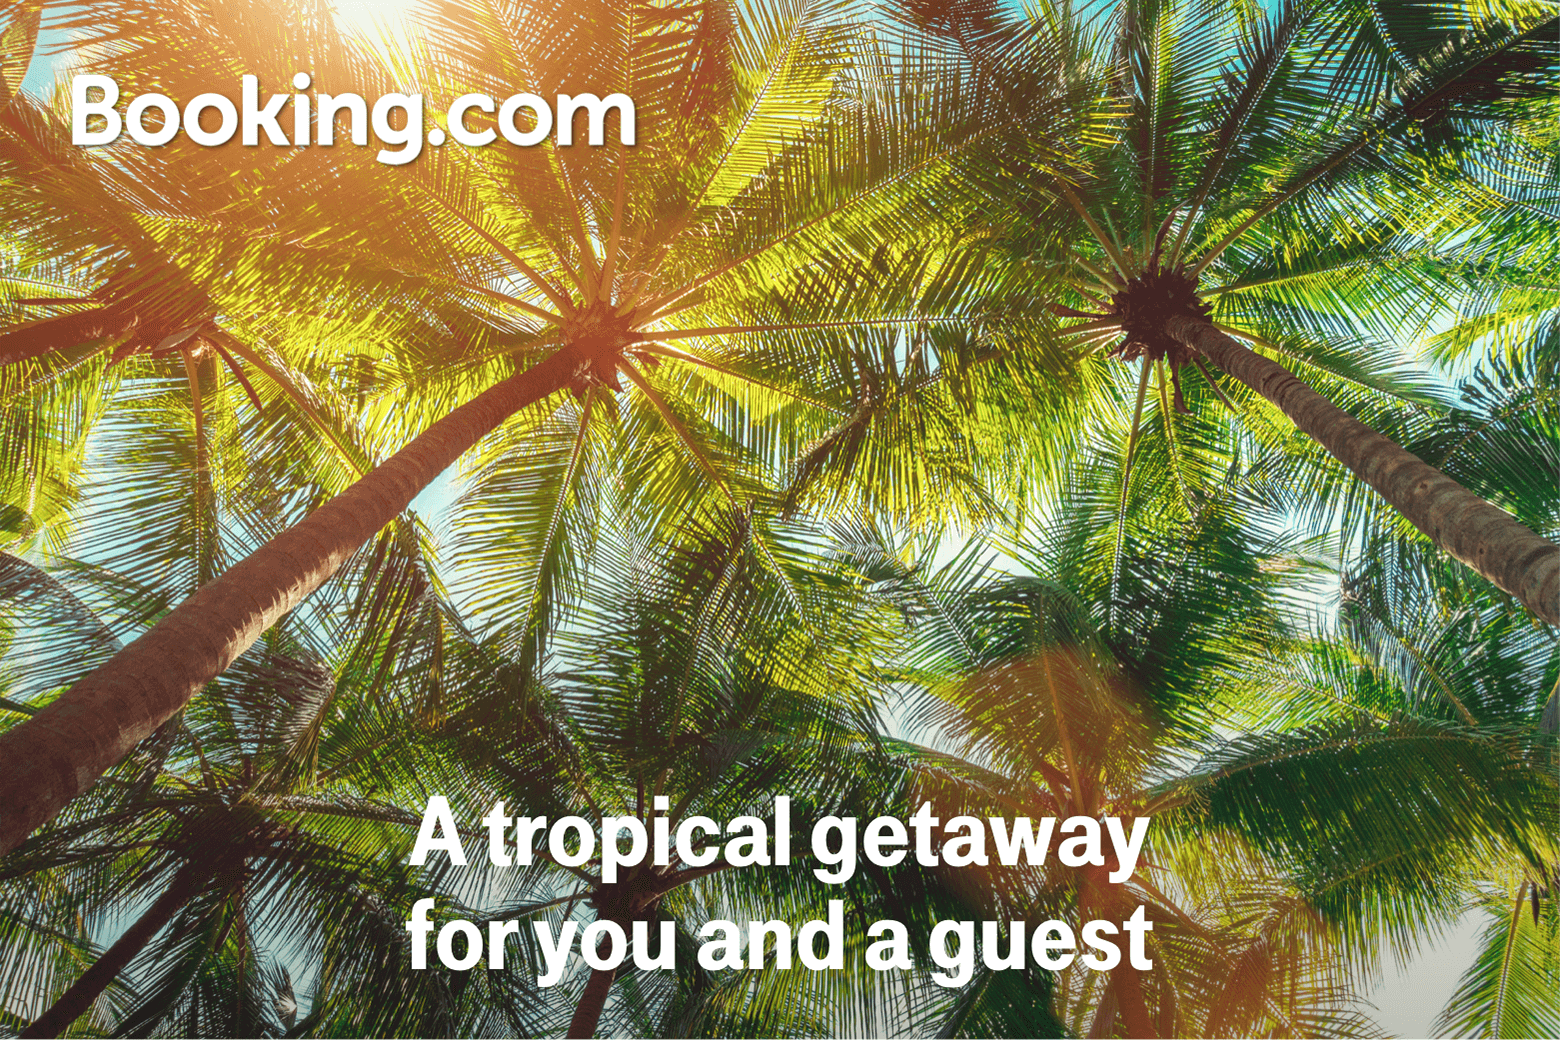 Booking.com. A tropical getaway for you and a guest.